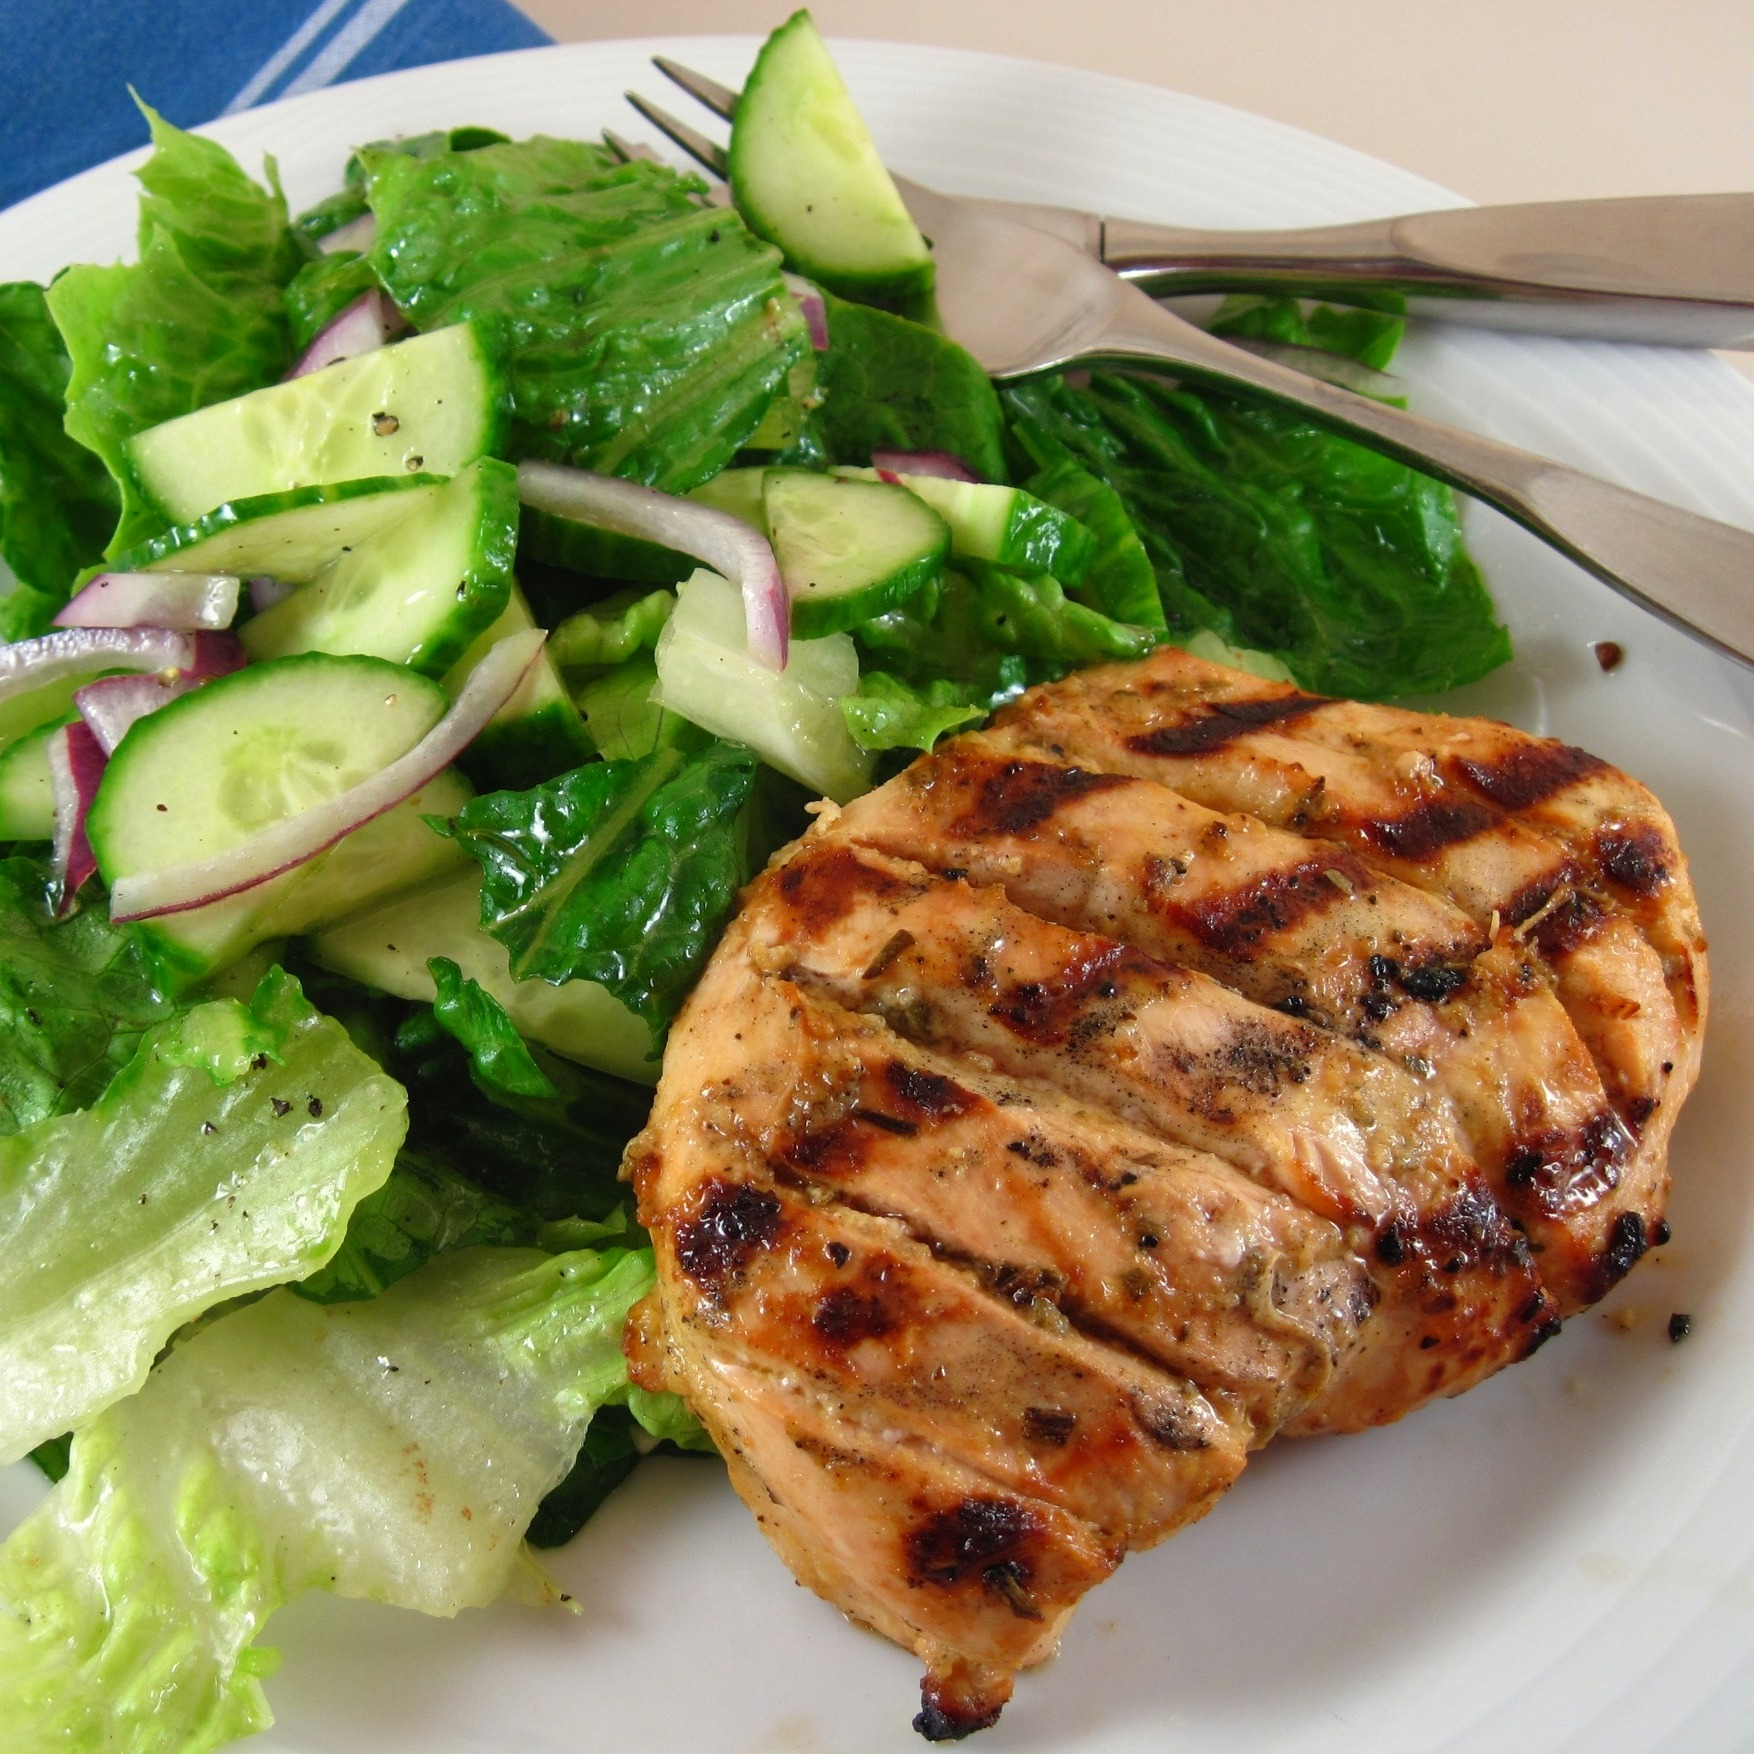 Perfectly Grilled Chicken Breasts with Lemon Zest, Garlic